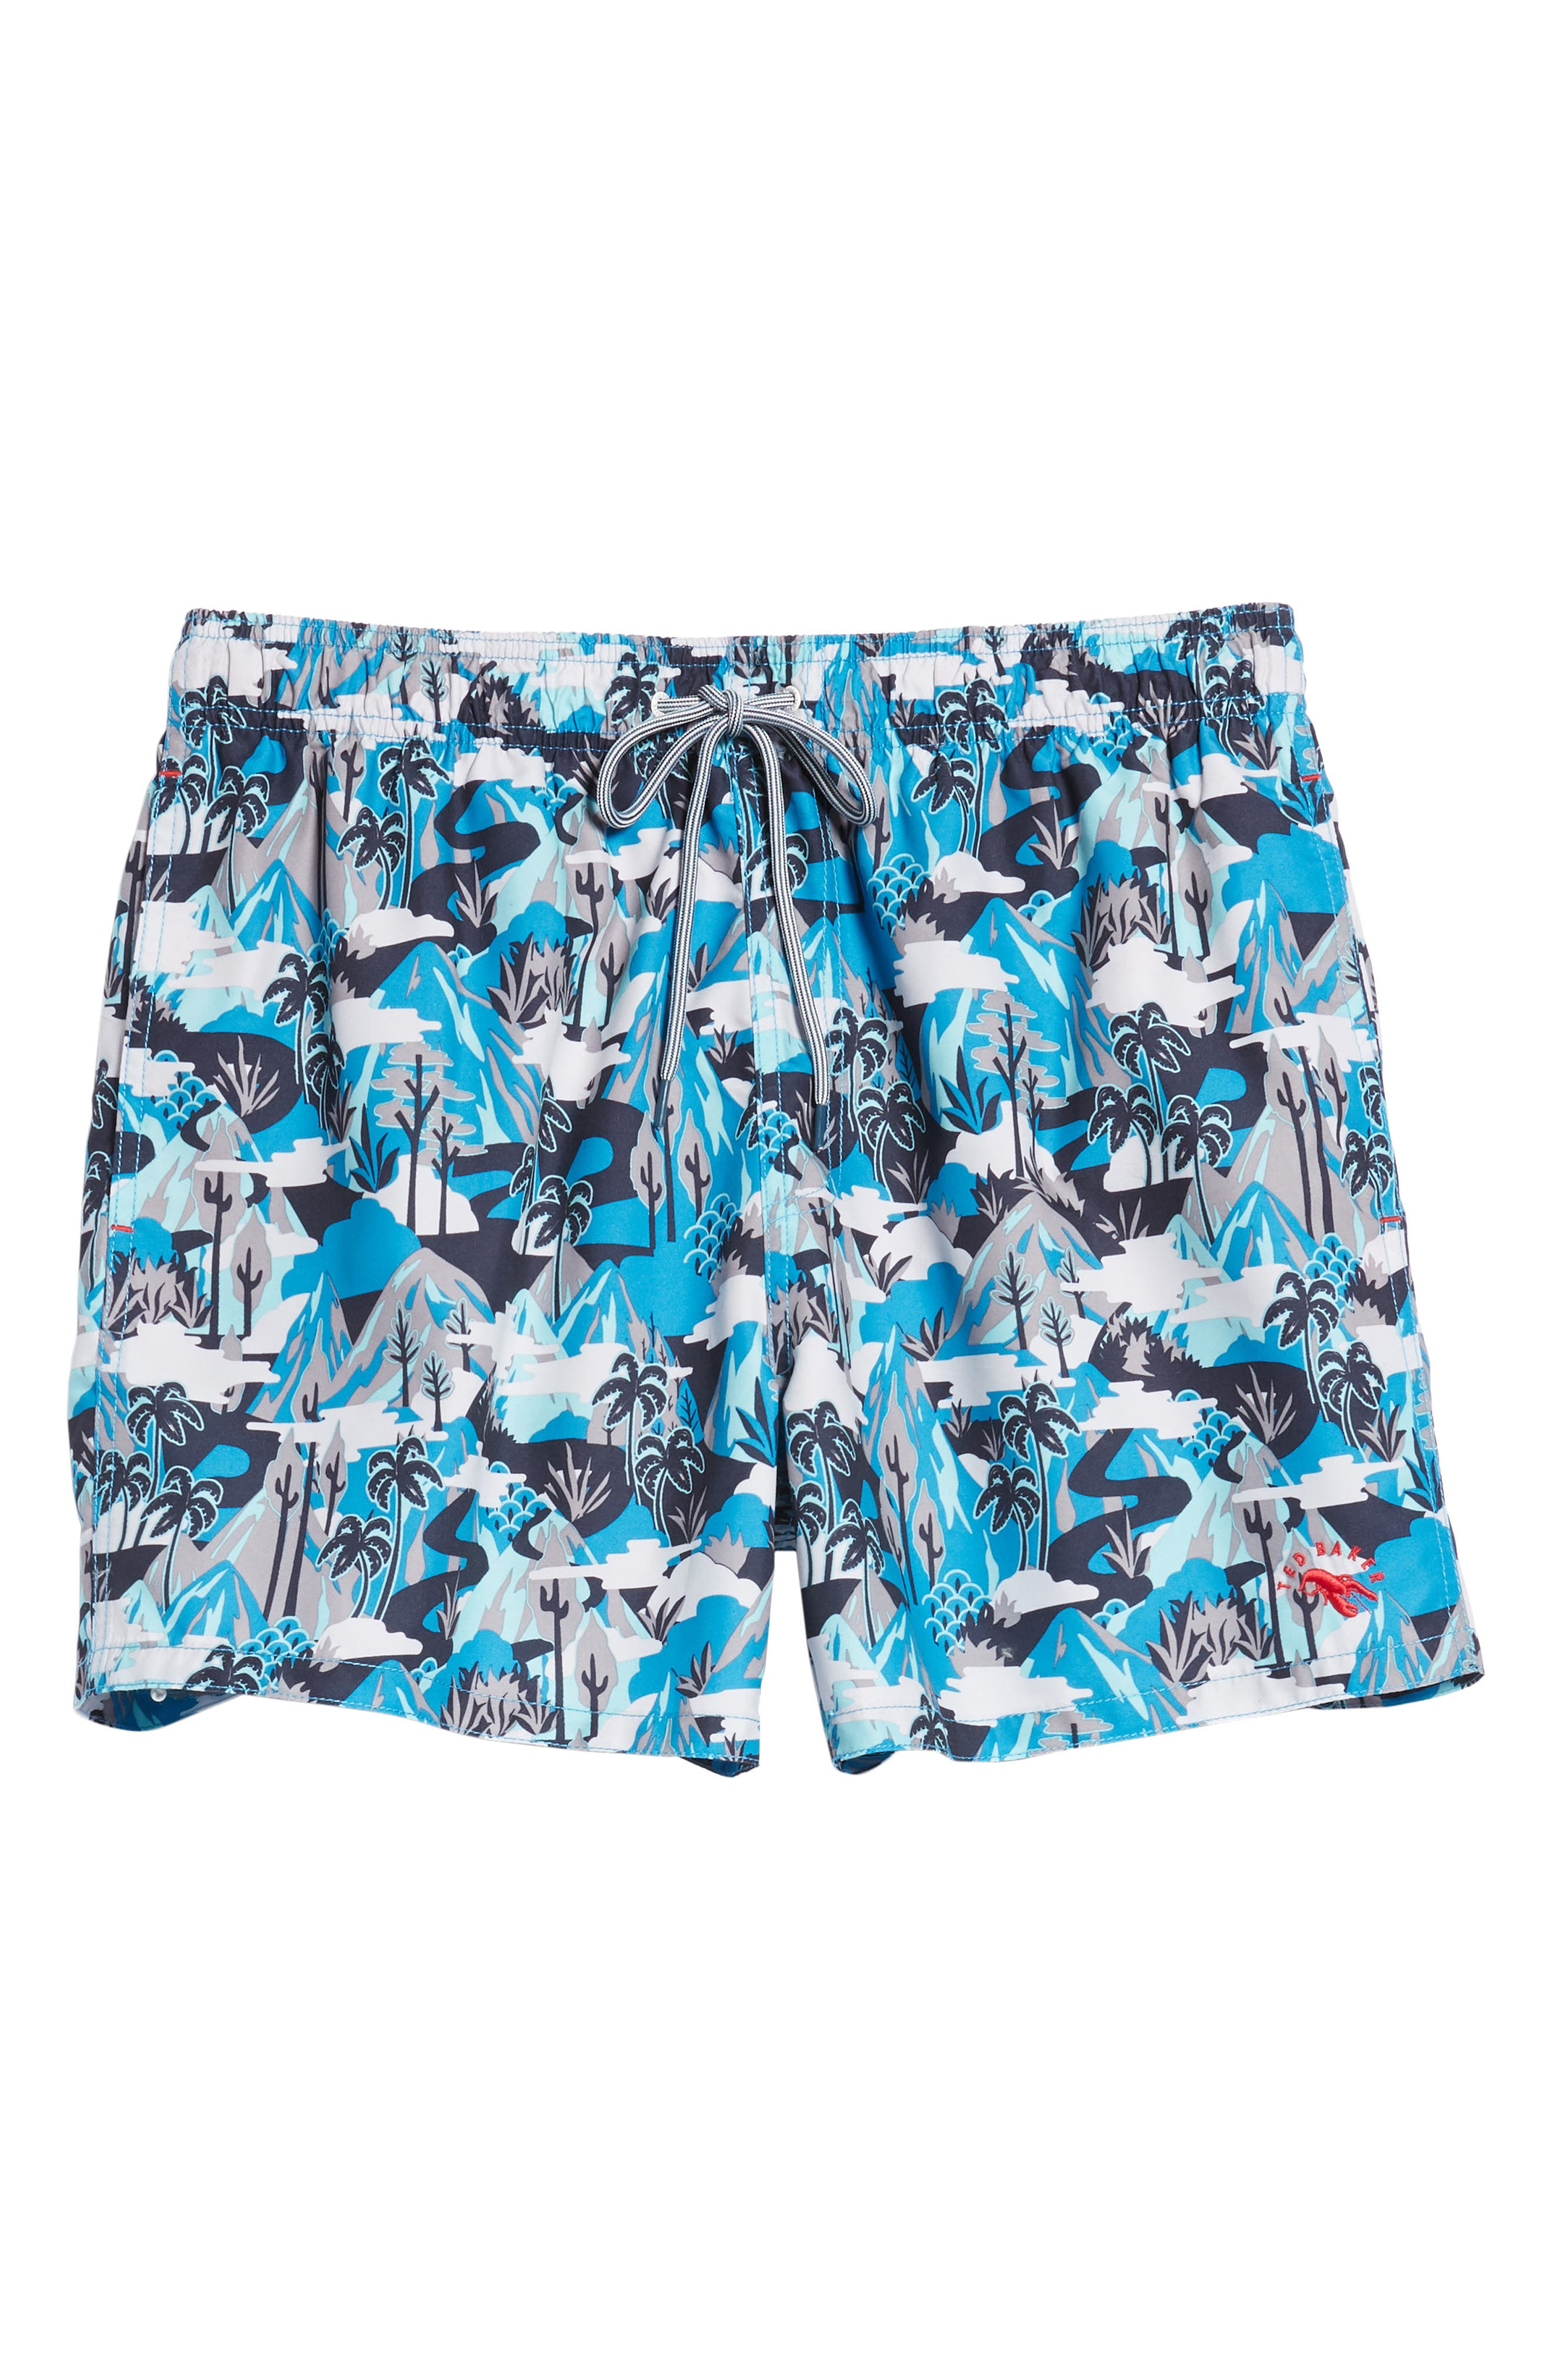 Karner Print Swim Trunks,                             Alternate thumbnail 6, color,                             421